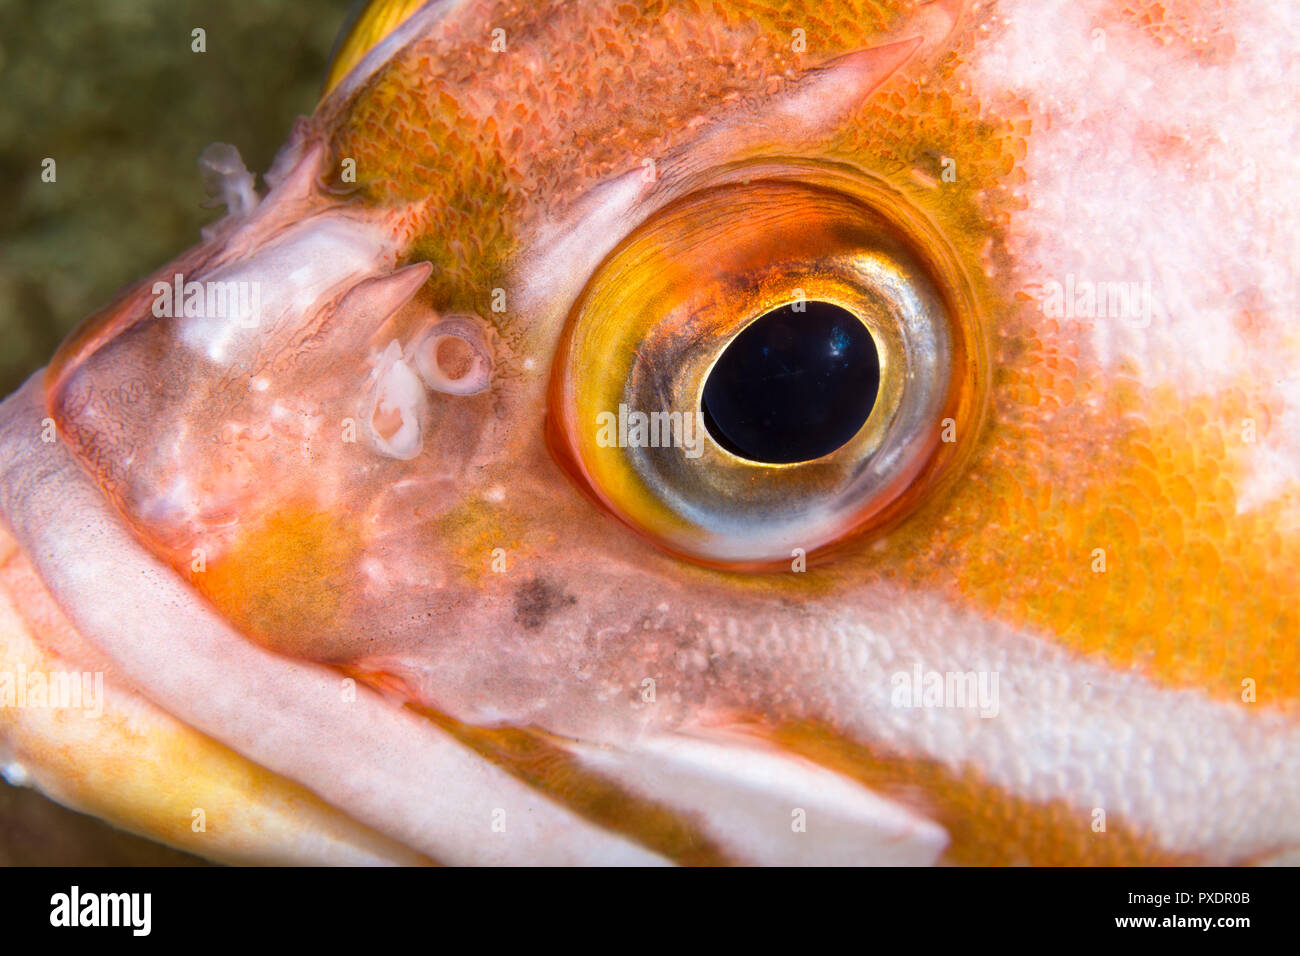 A close up of a copper rockfish face shows the detail if its eye as the fish rests on a reef in the waters of California's Channel Islands. - Stock Image